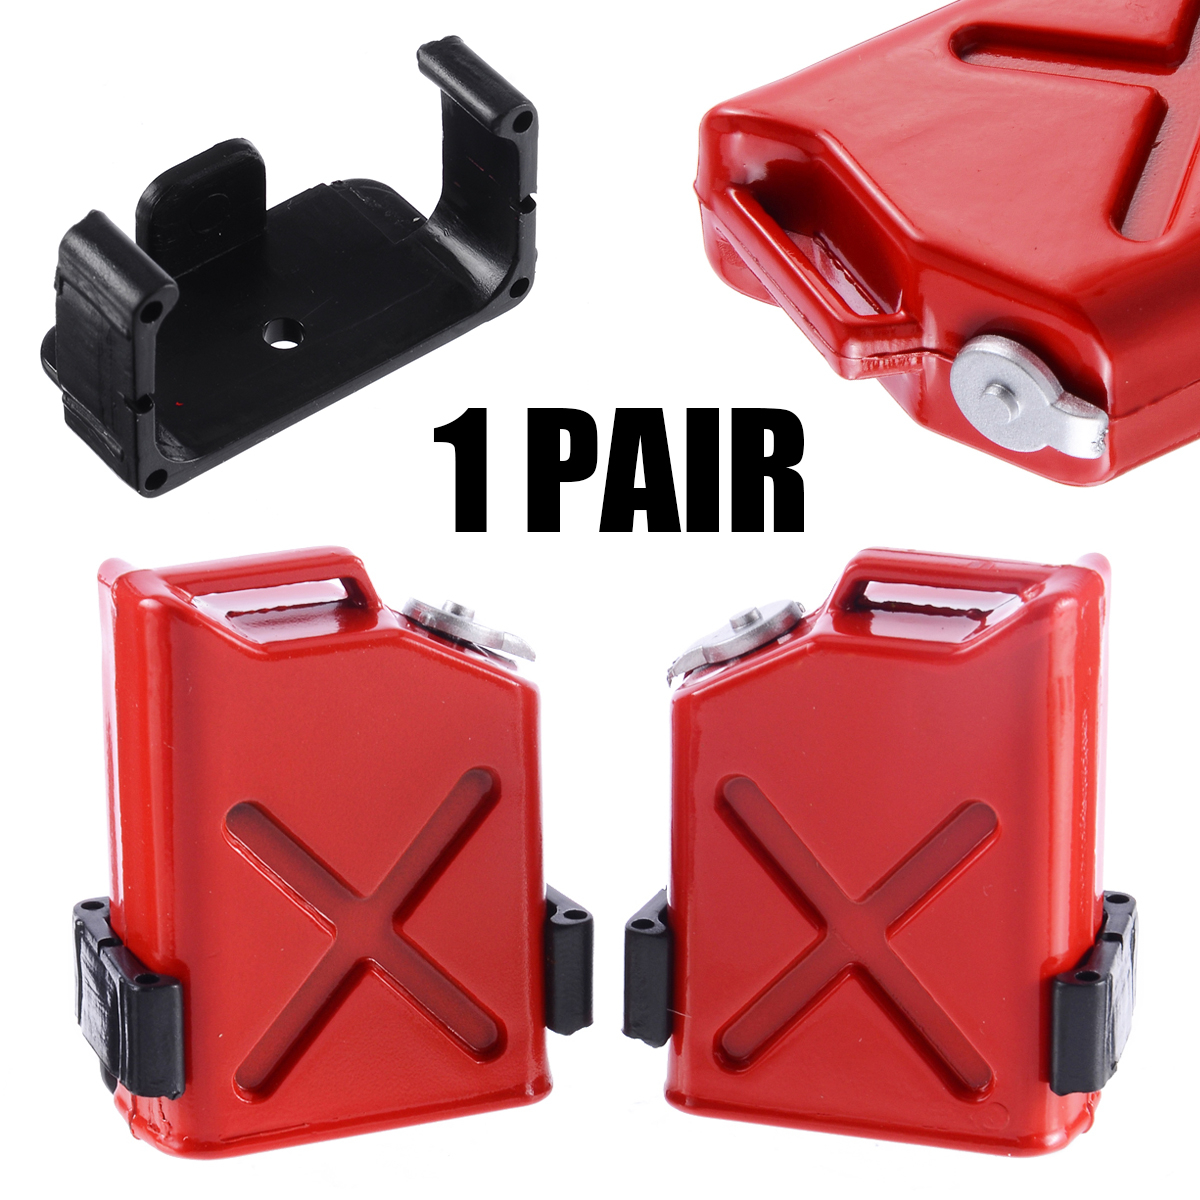 1 Pair Scale 1:10 RC Rock Crawler Truck Cars Accessory Red Gas Cans With Brackets Plastic DIY Decoration Simulation Fittings